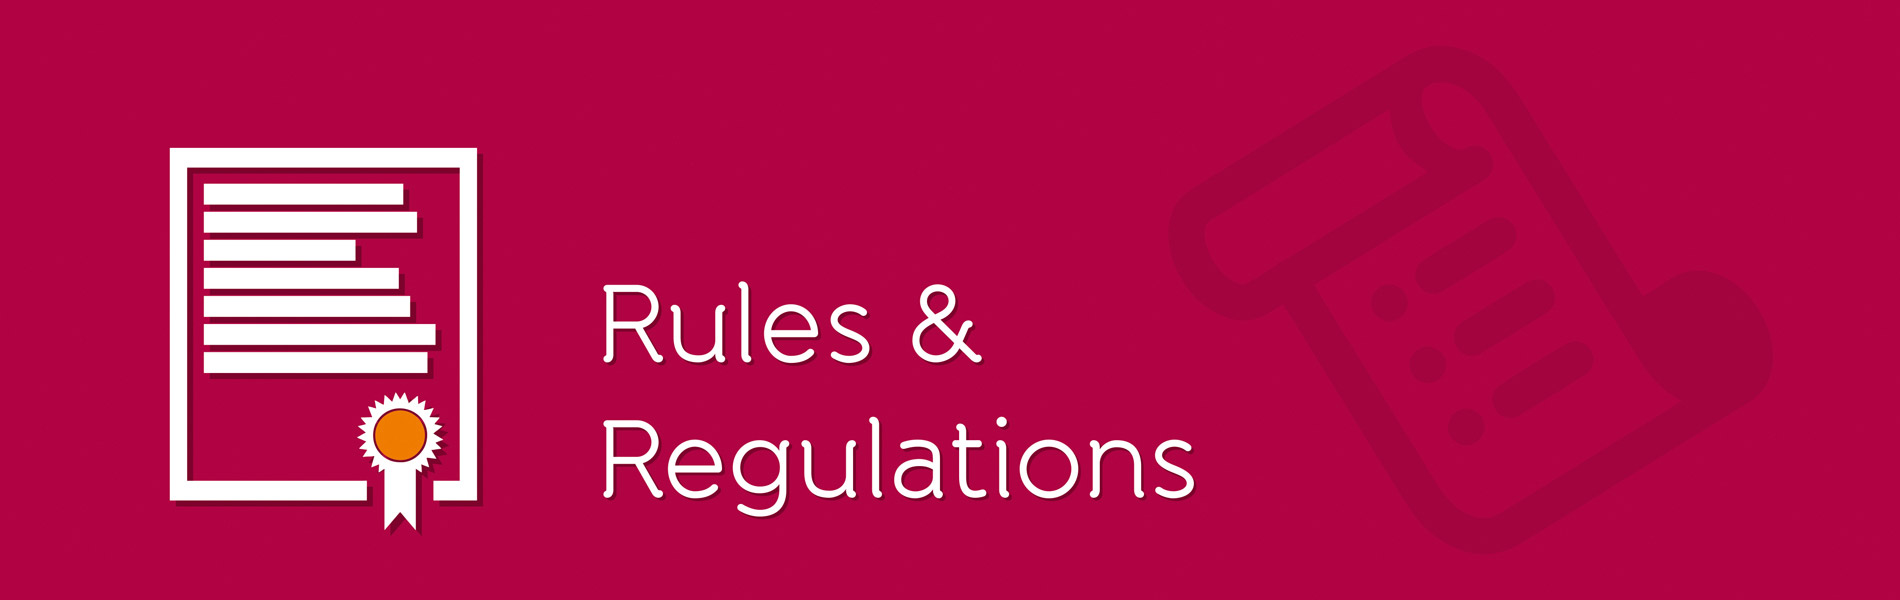 Rules and Regulations at Arya College of Engineering and IT Jaipur